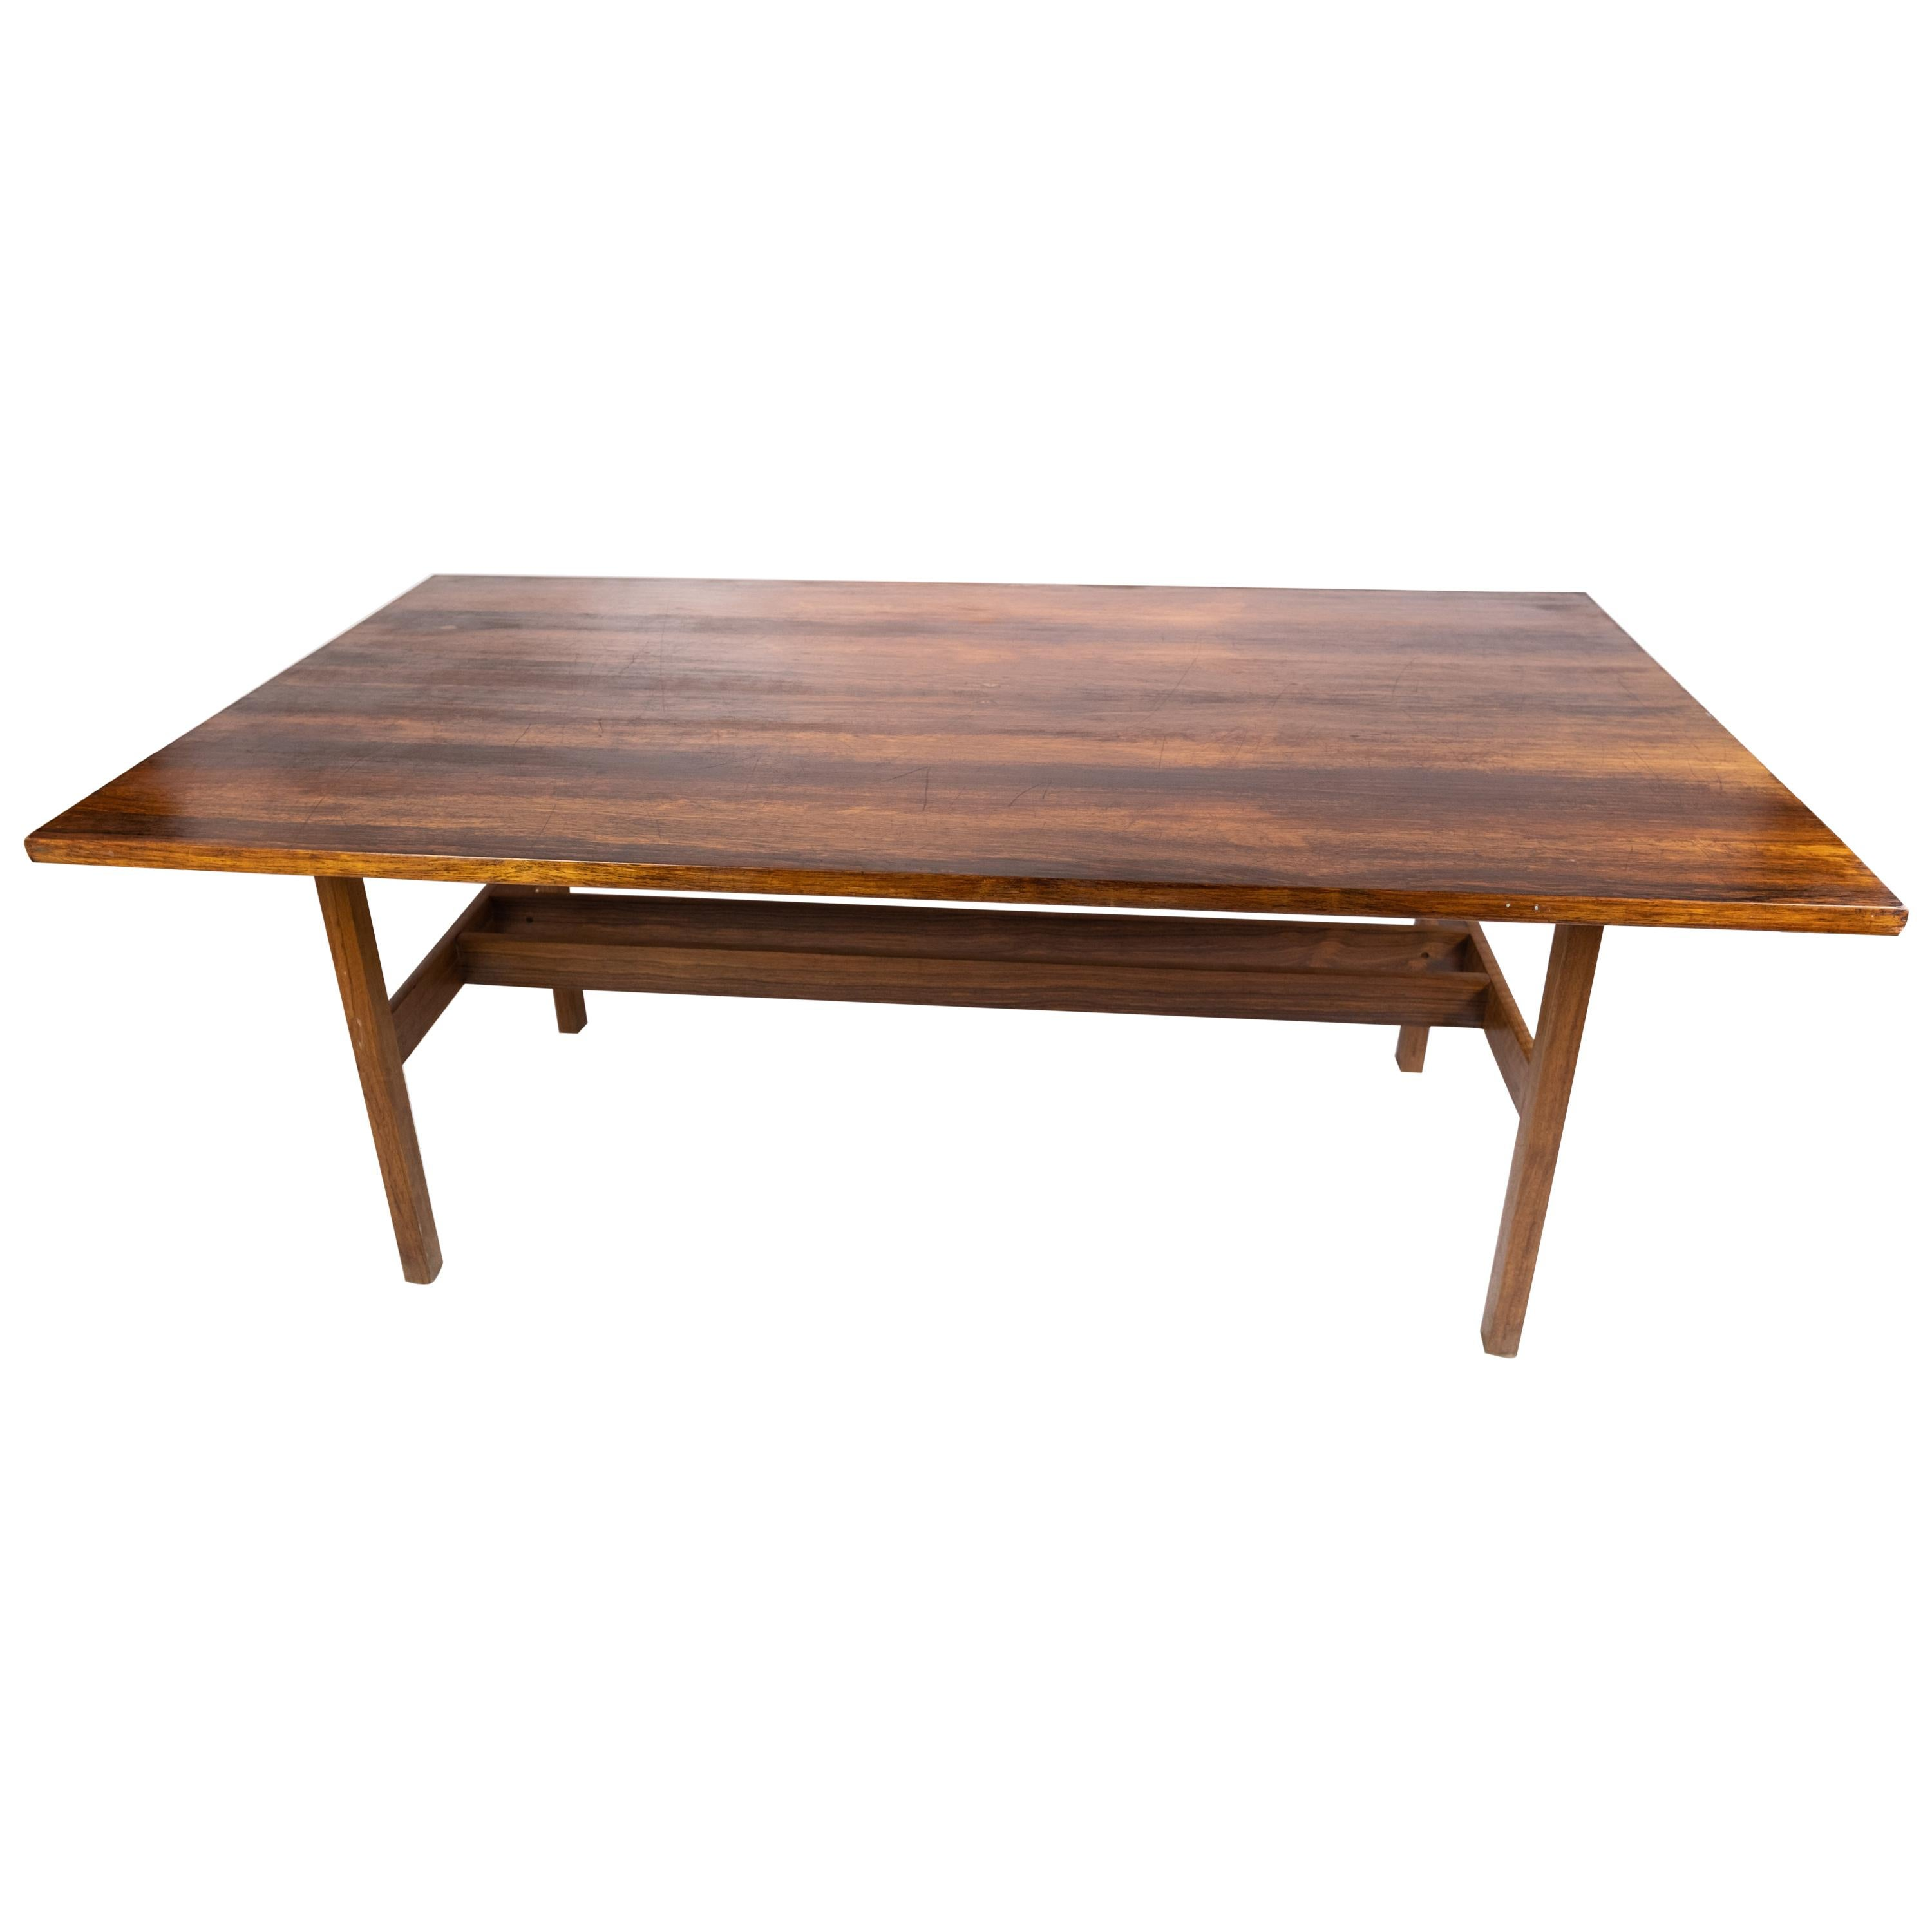 Dining Table in Rosewood of Danish Design from the 1960s